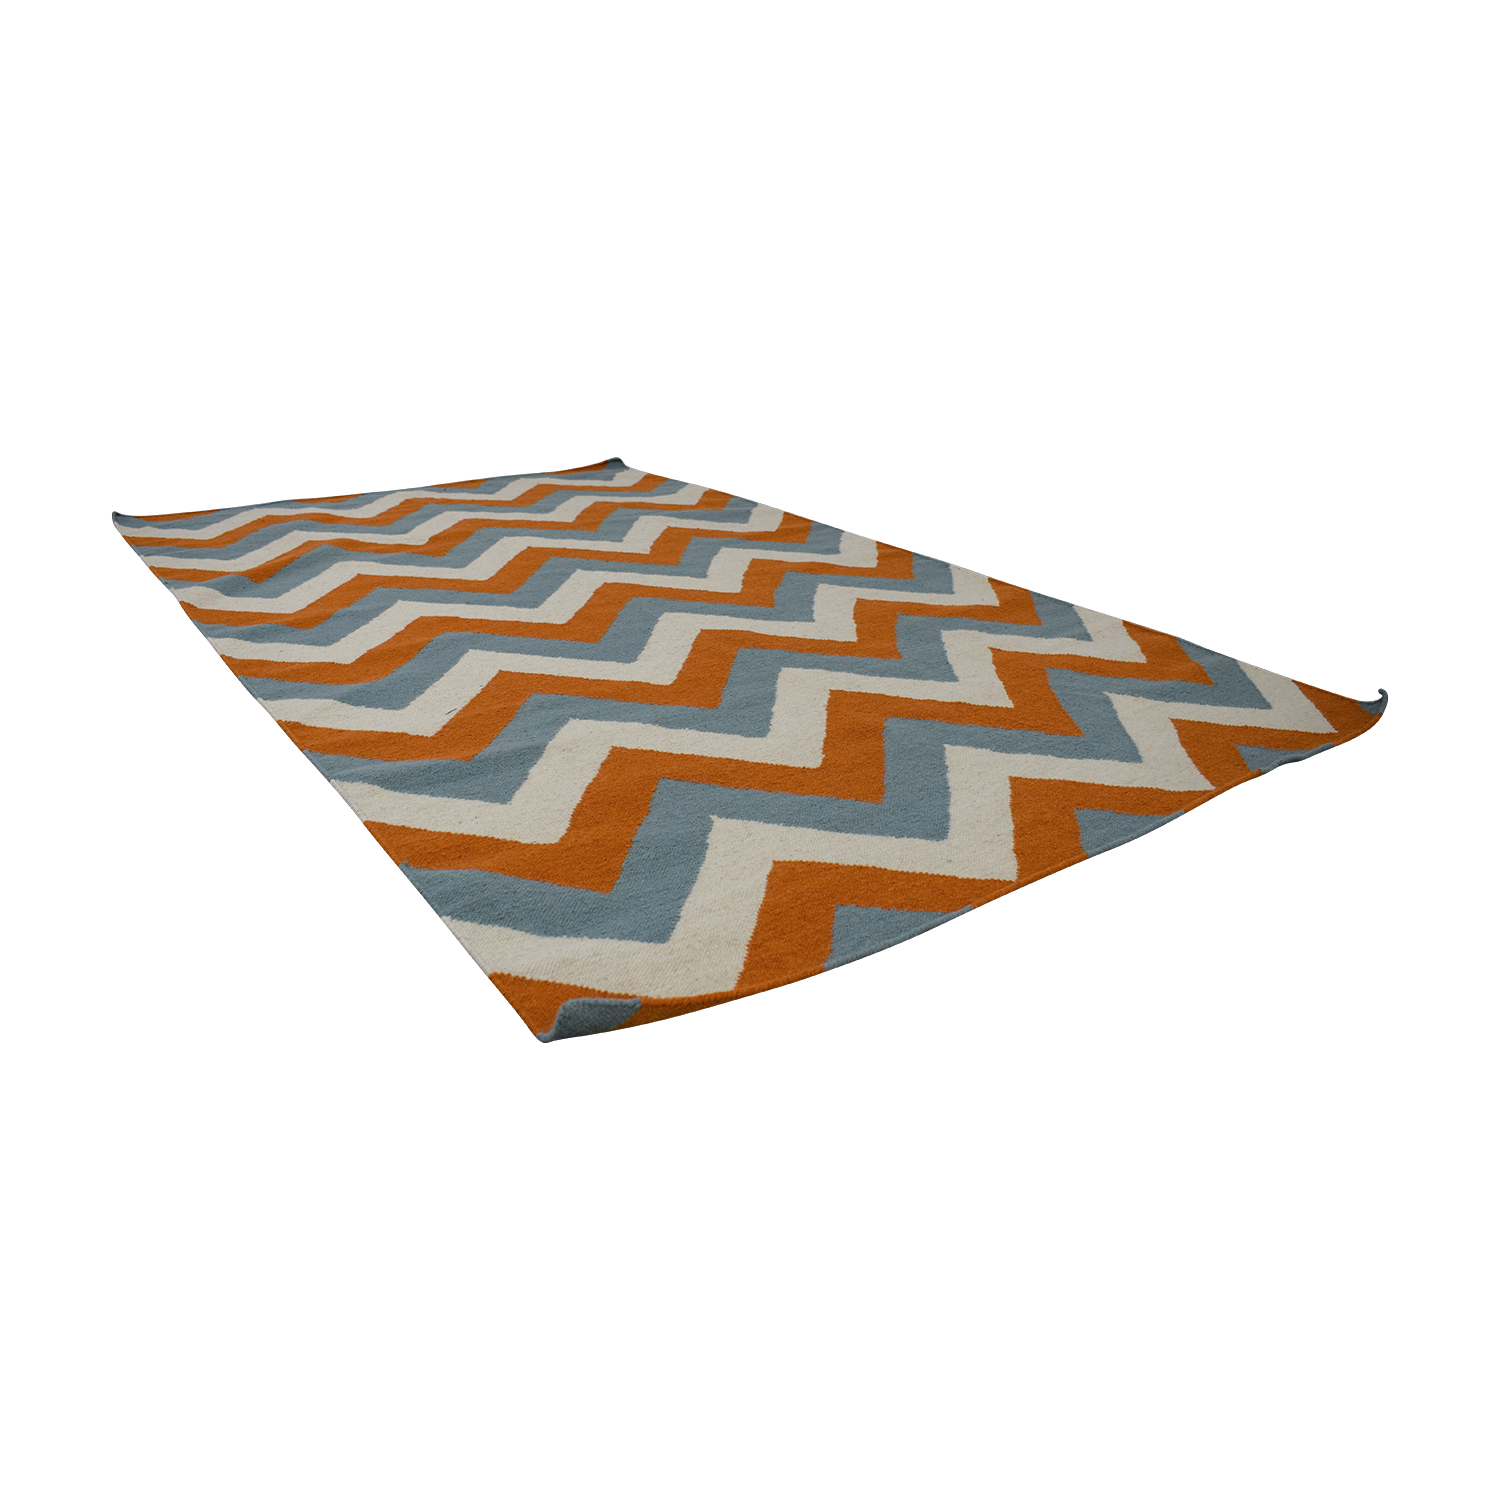 shop Pier 1 Pier 1 Blue Orange and Cream Rug online